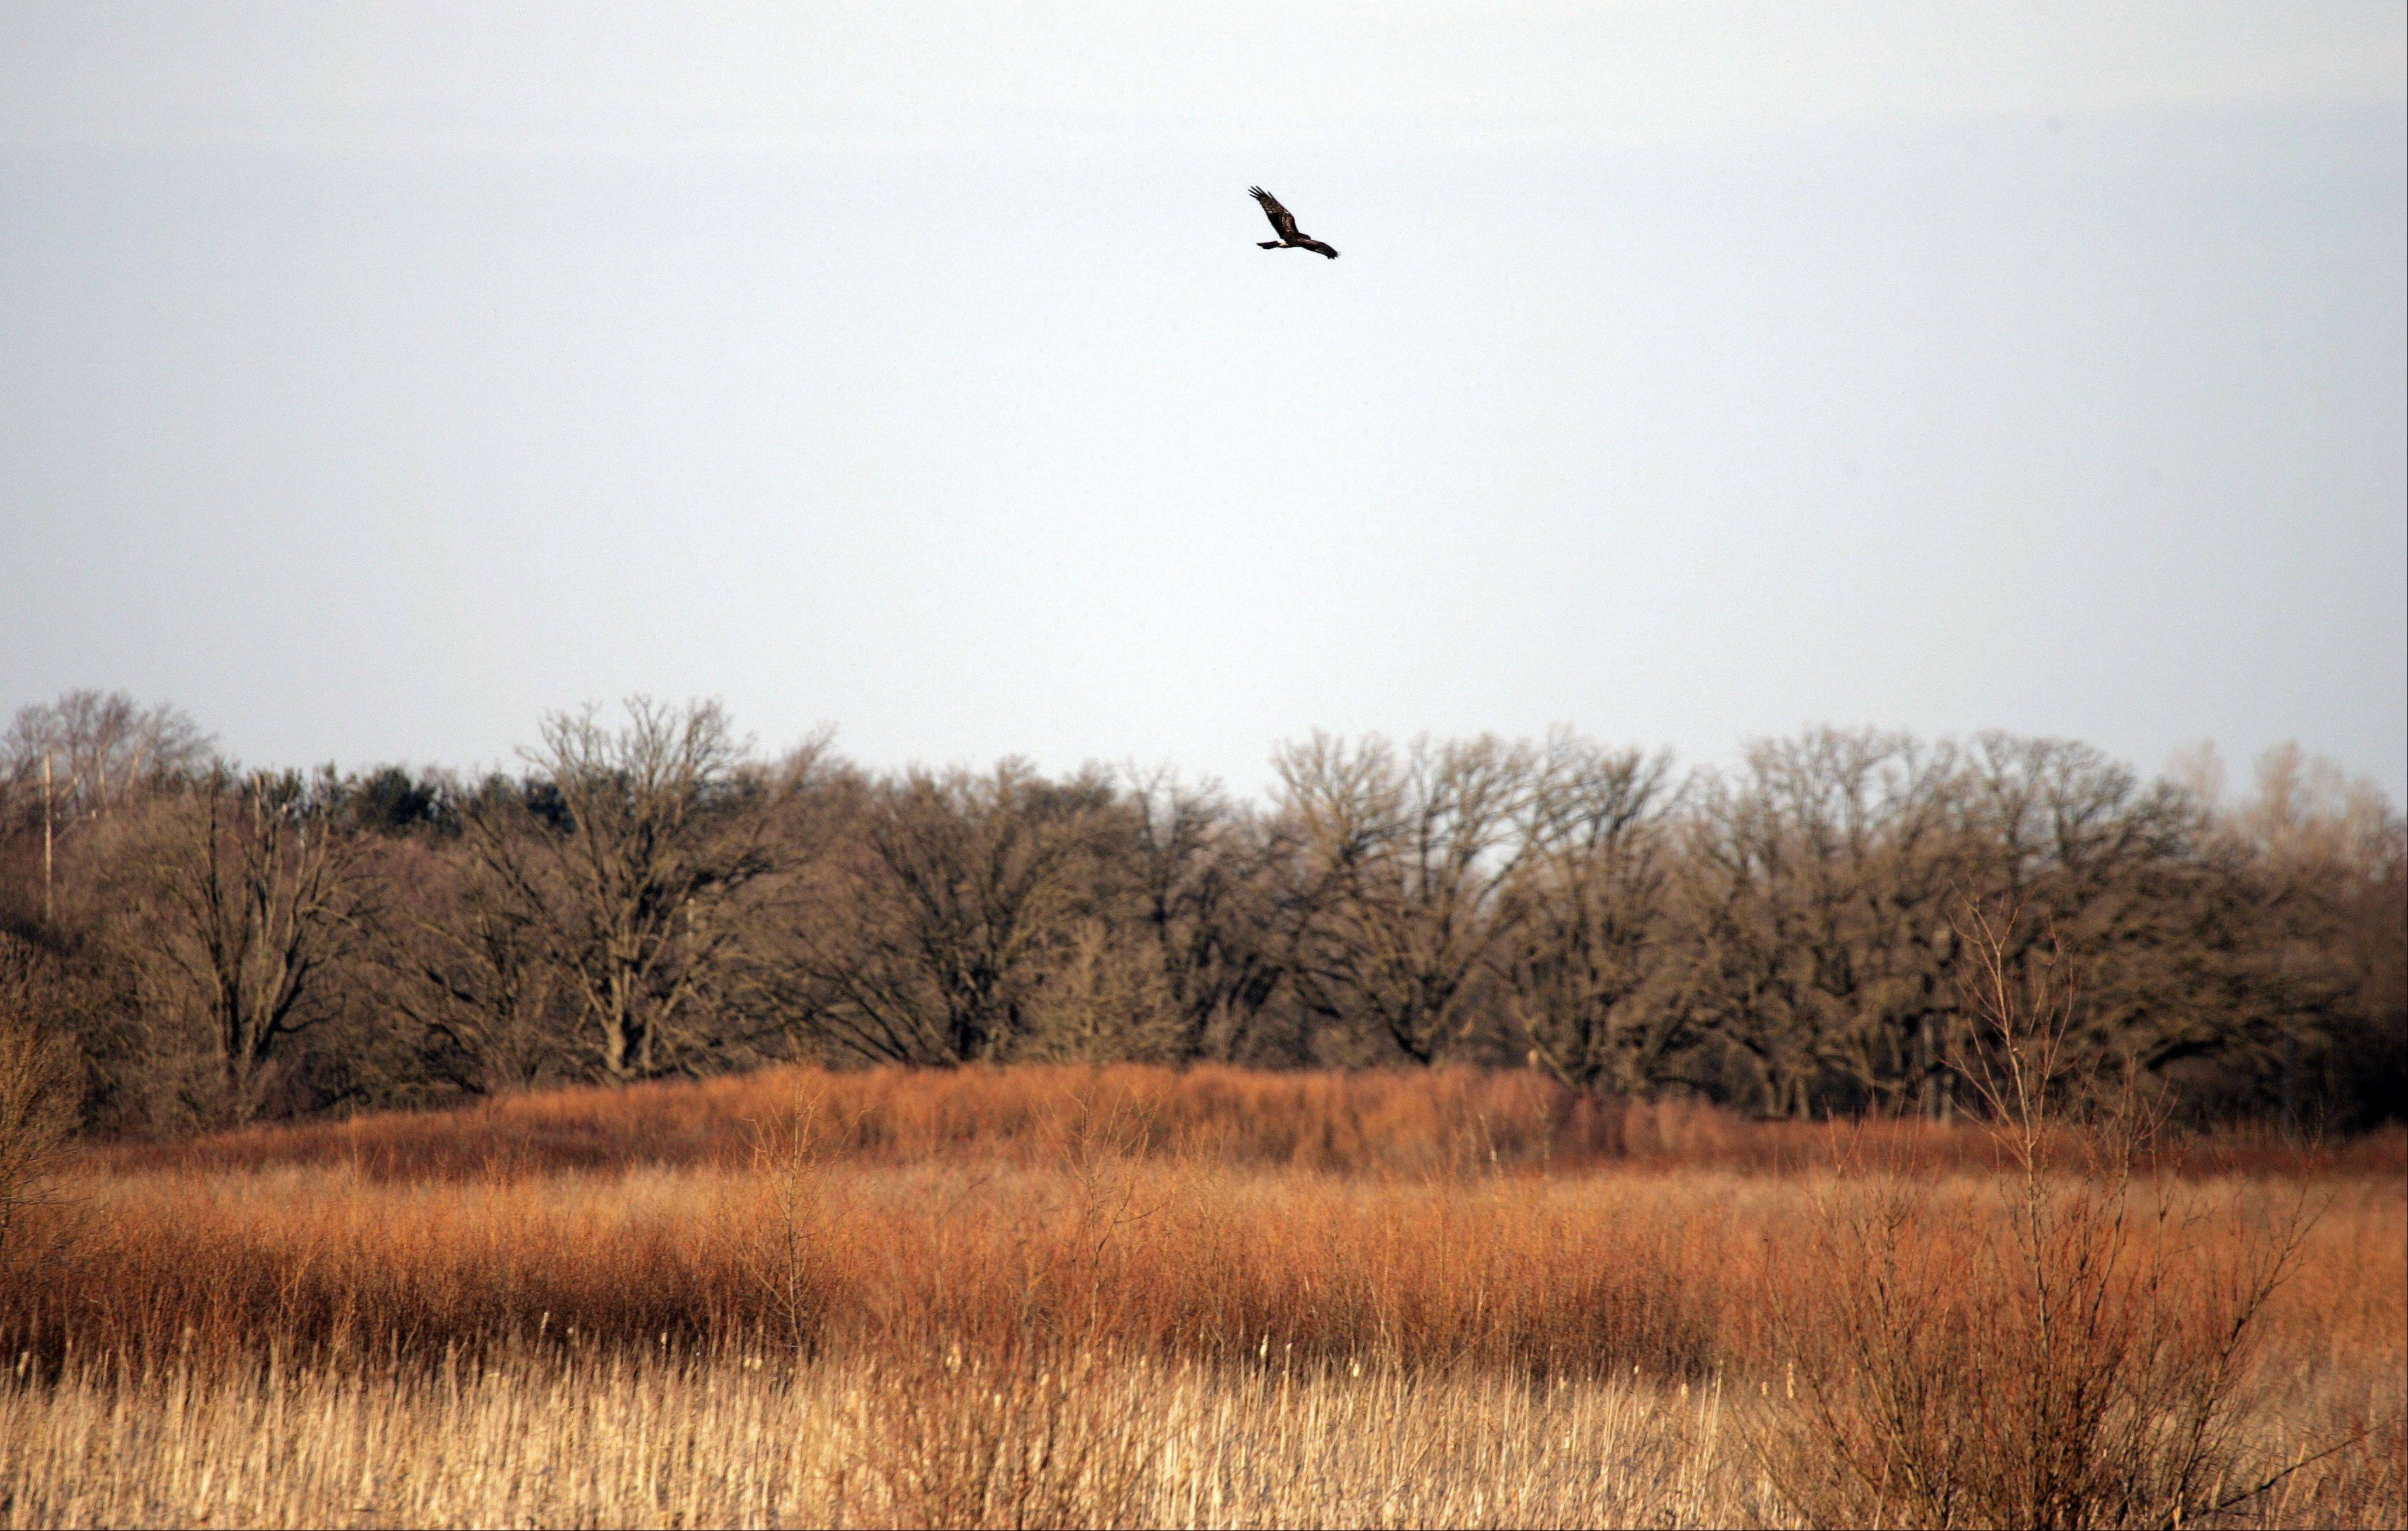 A bird of prey makes a pass over one of the prairies at the Hackmatack National Wildlife Refuge.